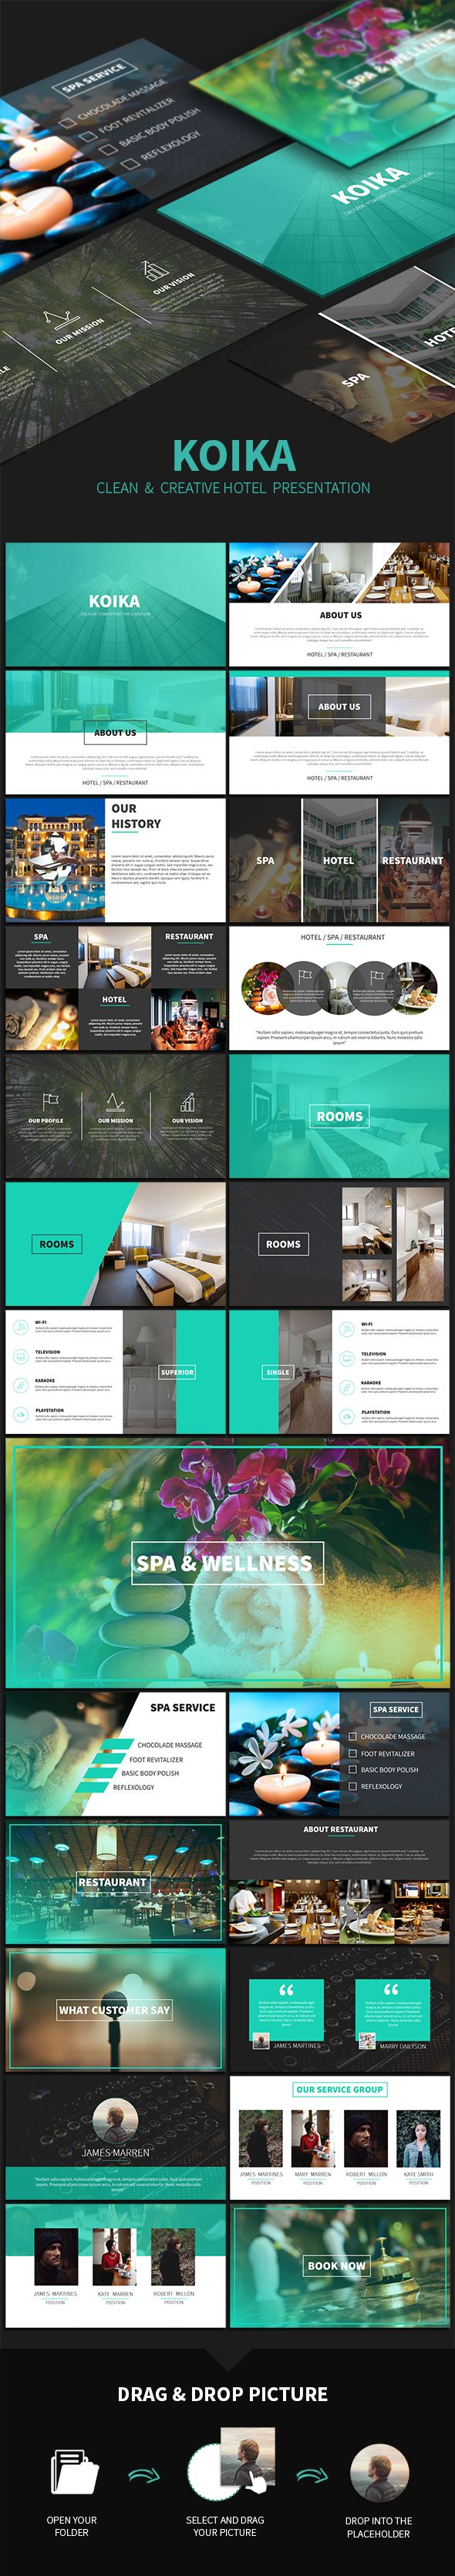 Koika Powerpoint Presentation Template. Download here: http://graphicriver.net/item/koika-powerpoint-presentation-template/15586577?ref=ksioks